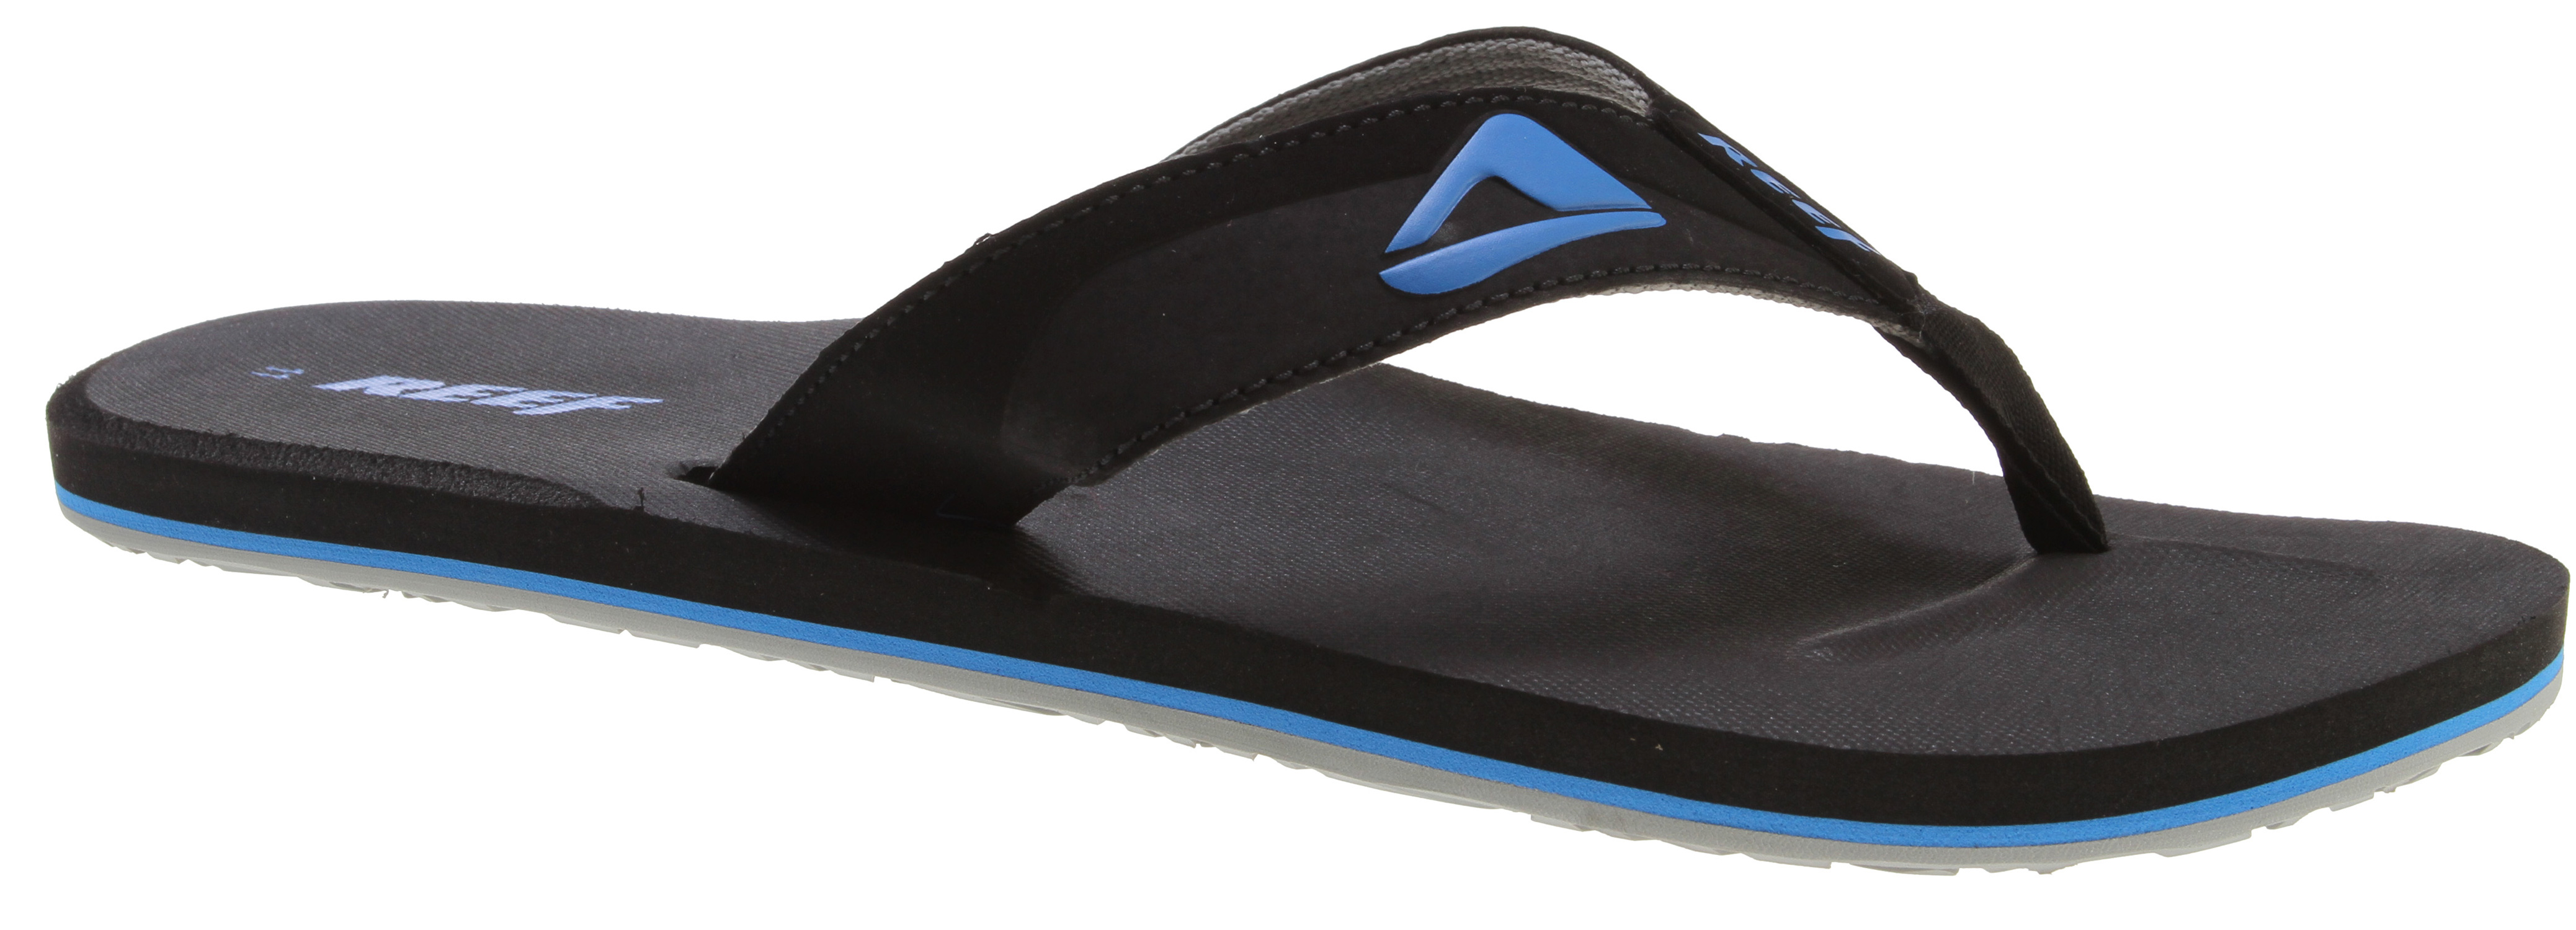 Surf Key Features of the Reef HT Sandals: Soft, comfortable, water friendly synthetic nubuck upper Soft reef polyester woven lining Contoured eva footbed with anatomical arch support Grippy molded reef rubber outsole - $17.95